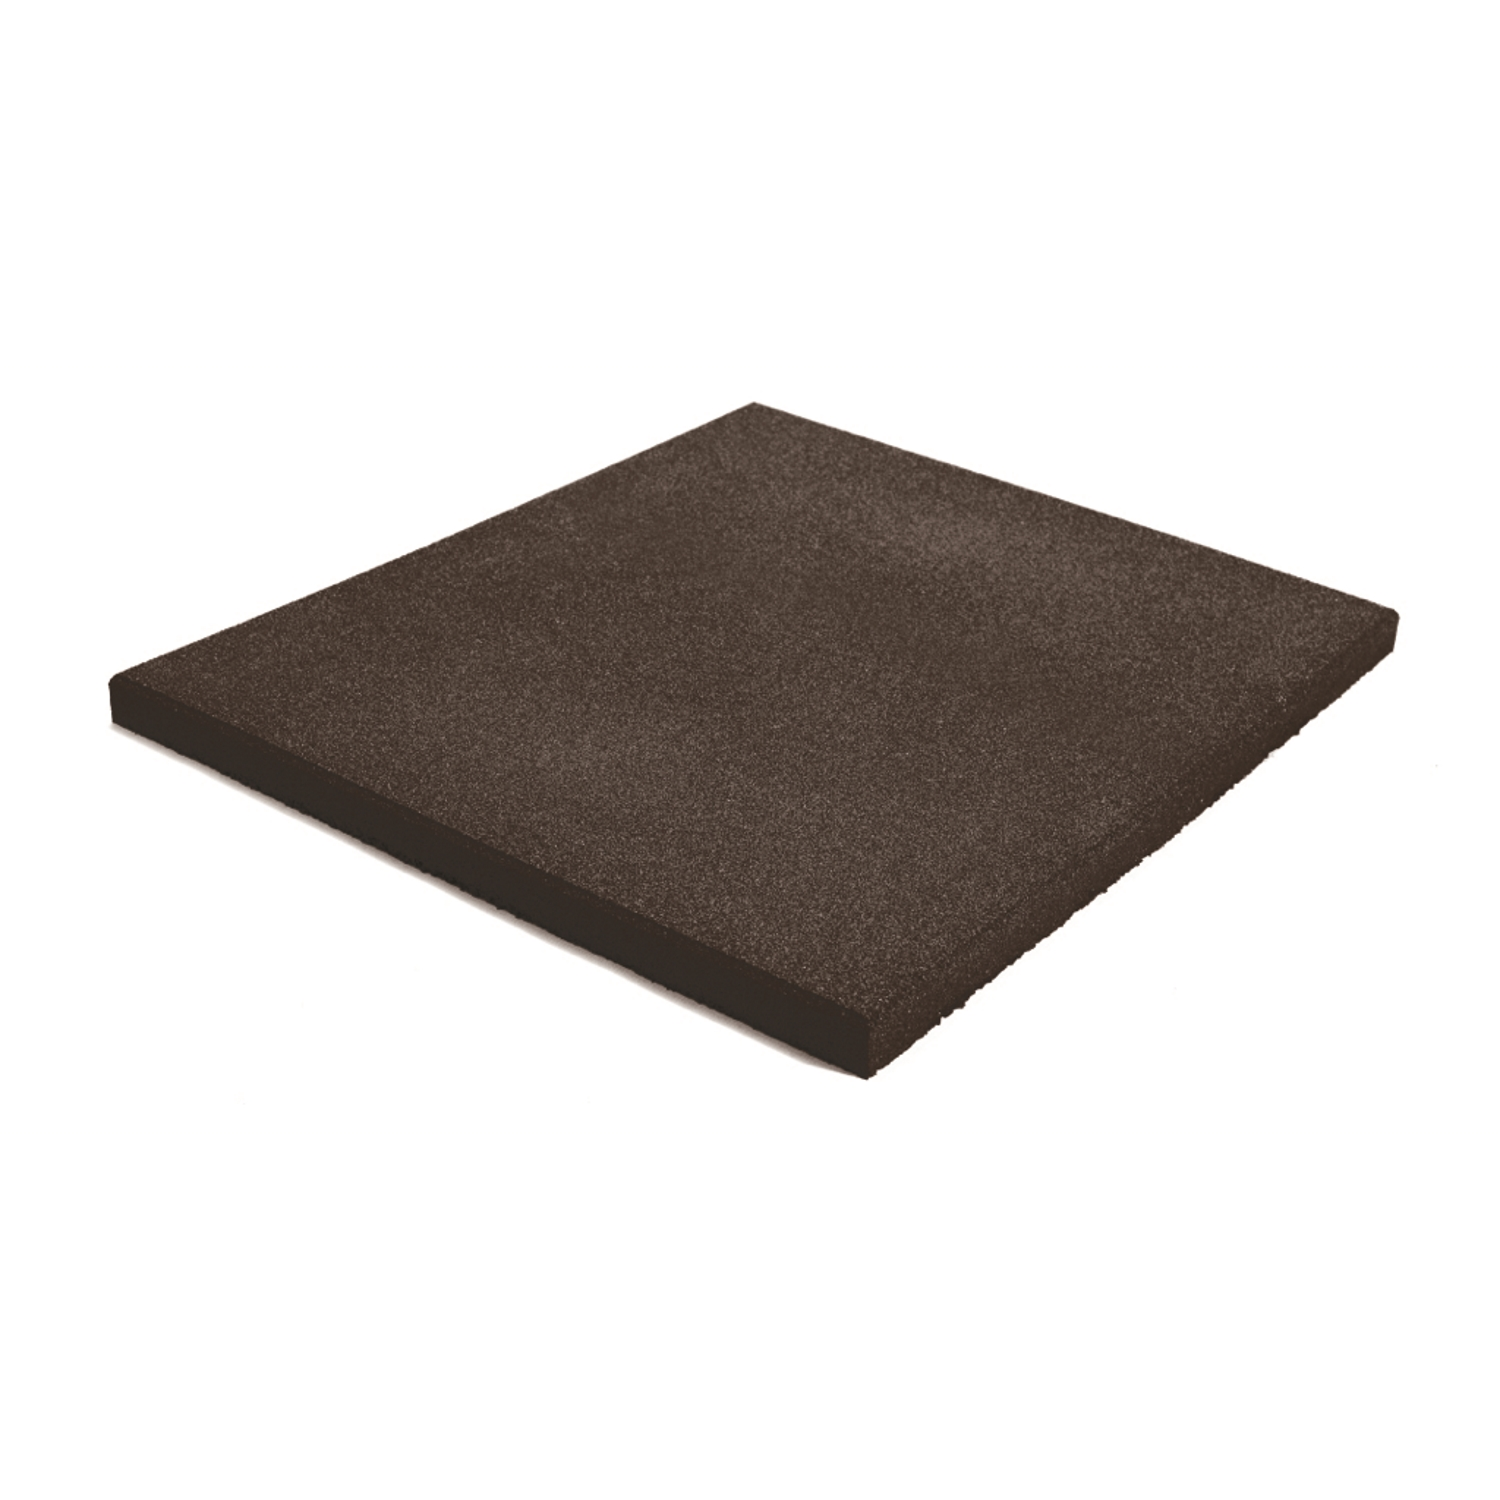 Jordan Activ Flooring - 30mm (Black)